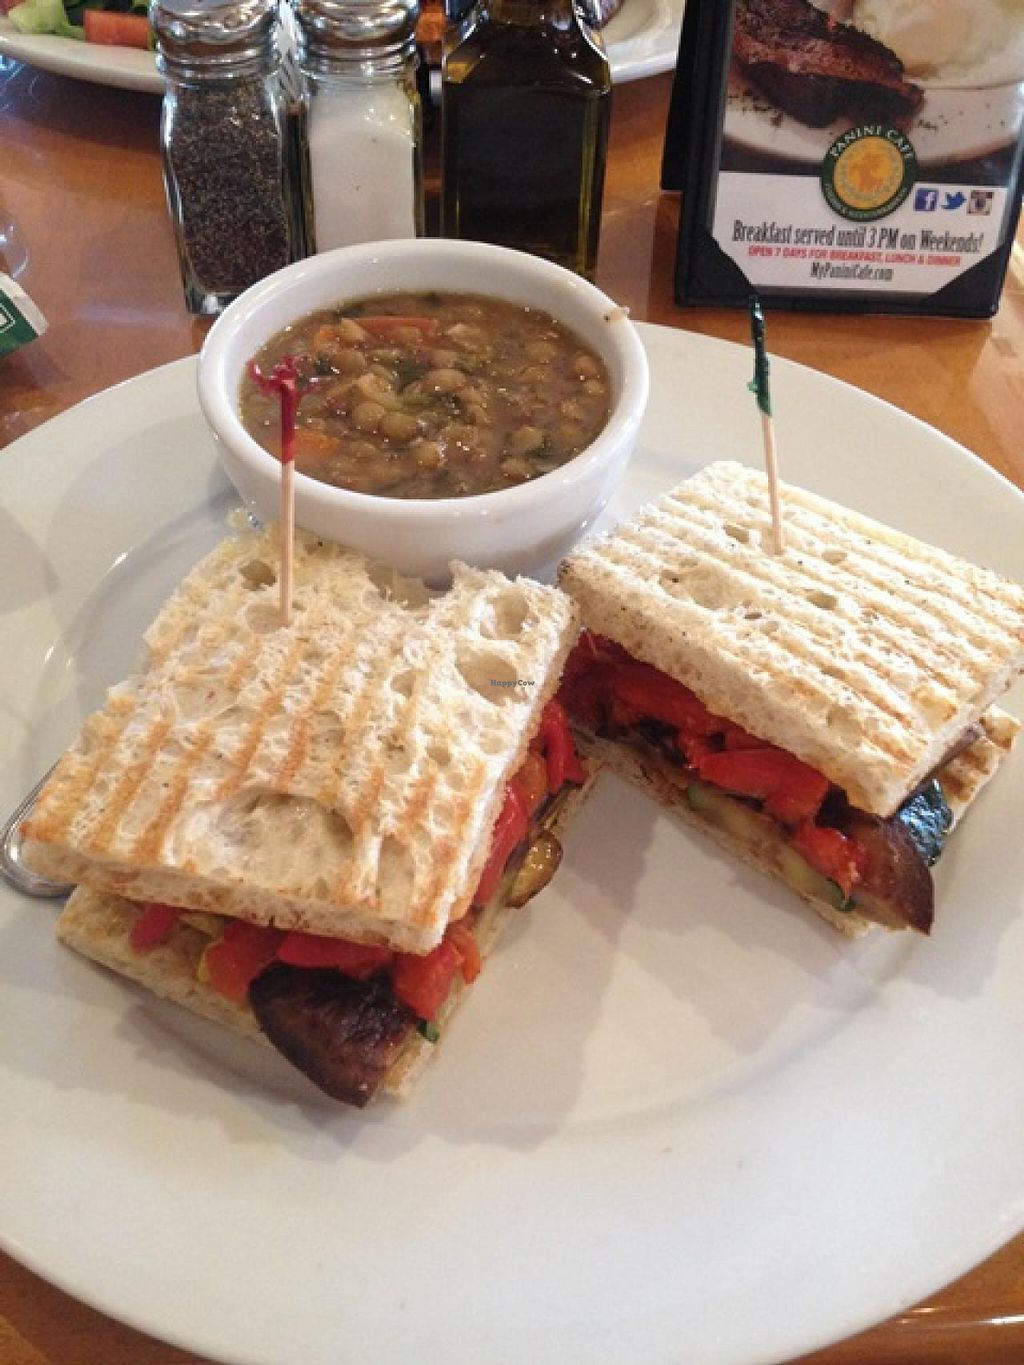 "Photo of Panini Cafe  by <a href=""/members/profile/Dalia23"">Dalia23</a> <br/>Grilled vegetable panini -- no cheese-- with a cup of lentil soup! <br/> December 28, 2013  - <a href='/contact/abuse/image/44307/61167'>Report</a>"